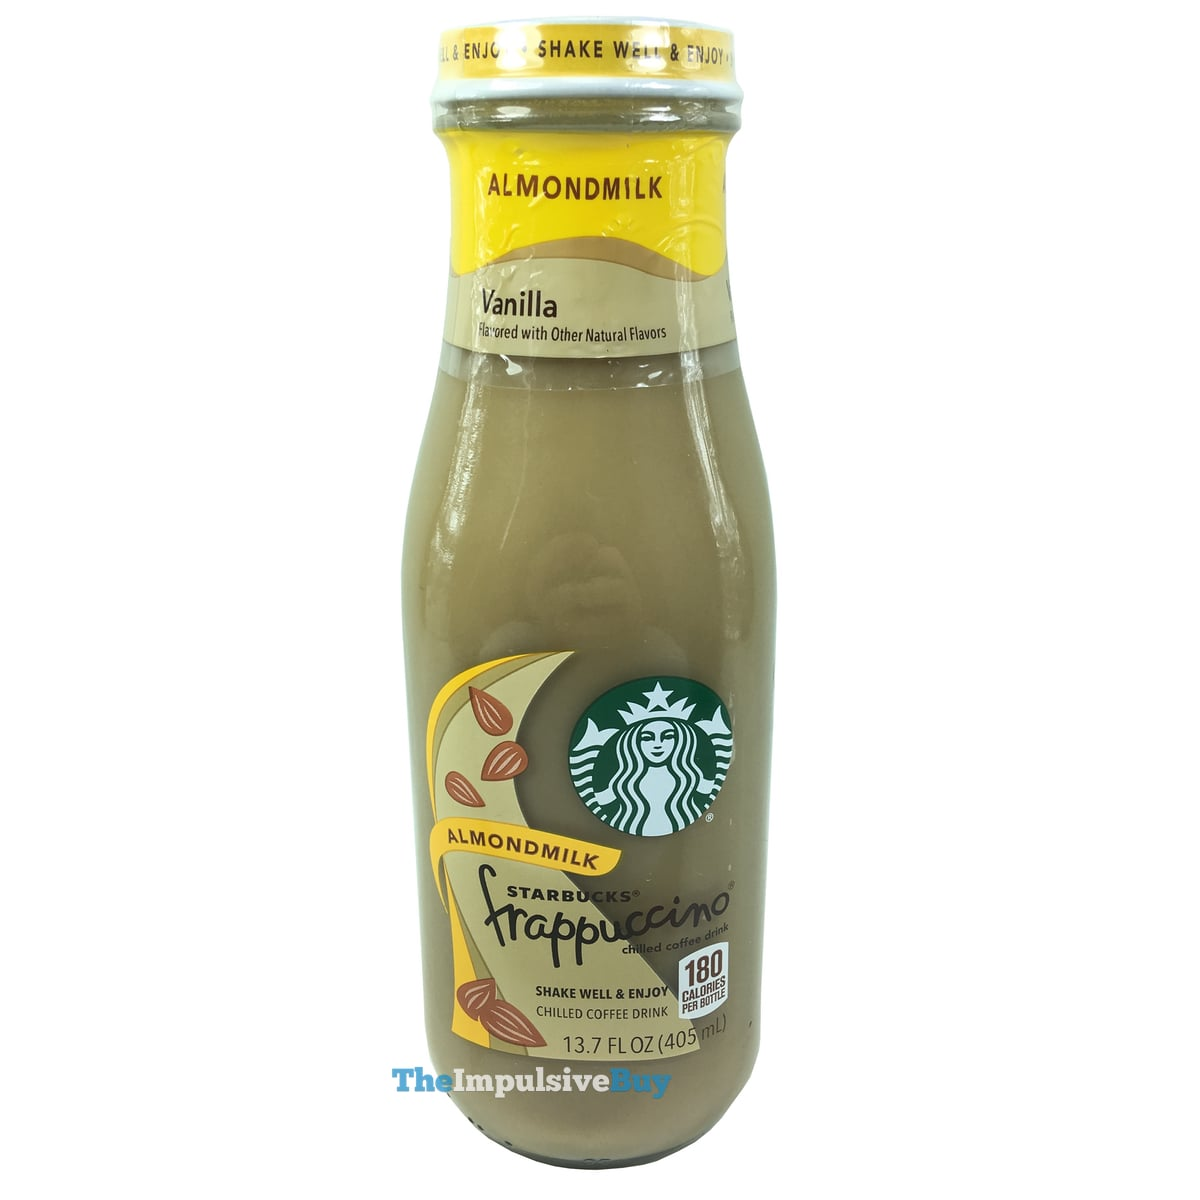 REVIEW: Starbucks Vanilla Almondmilk Frappuccino